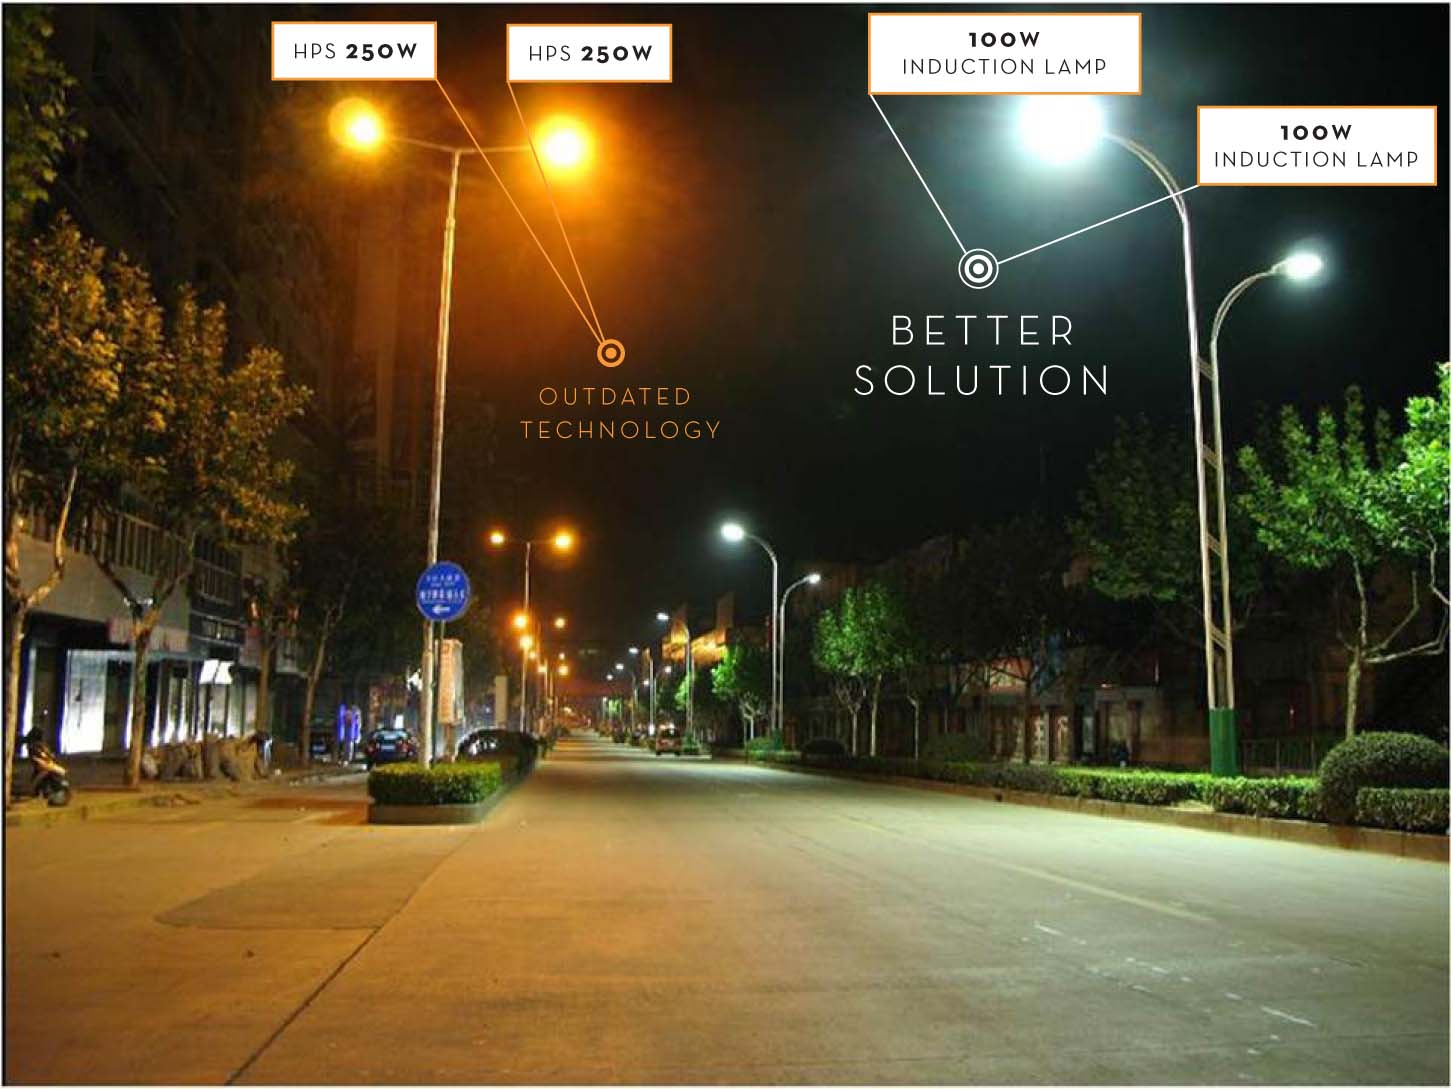 INDUCTION LIGHTING ON STREET LAMPS